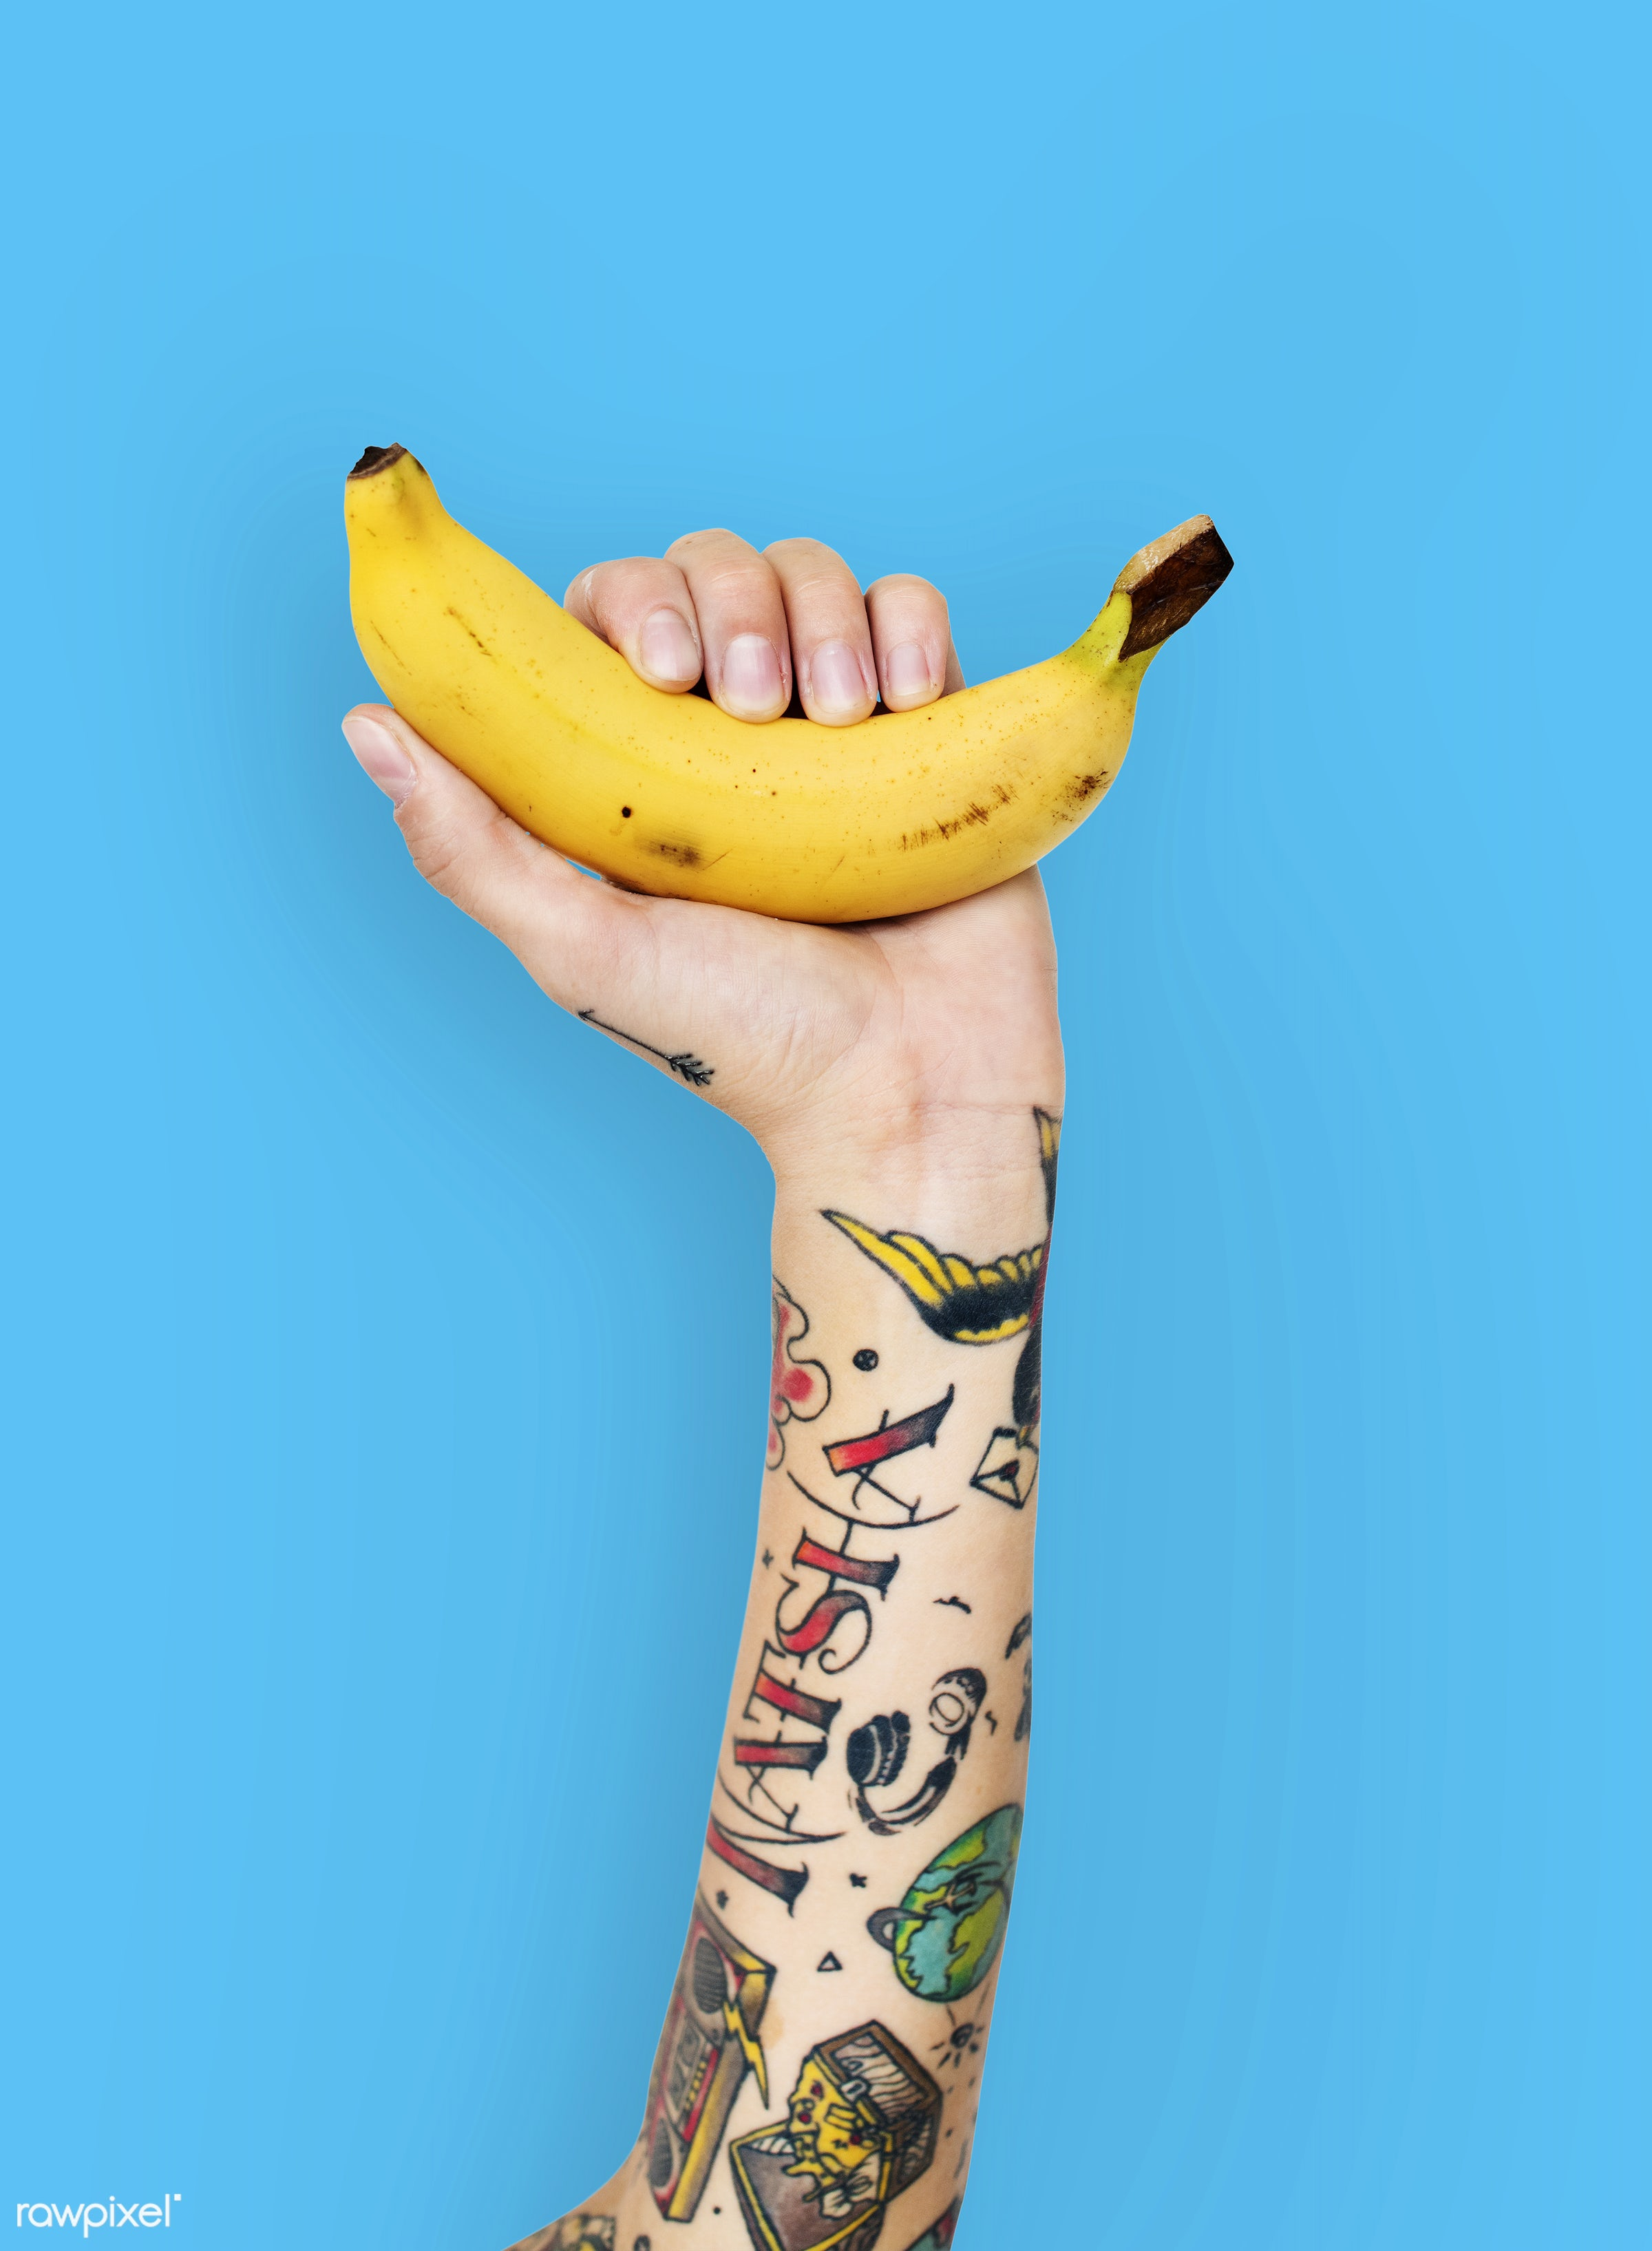 Tattoo covered arms holding a banana - tattoo, vitamin, adult, alternative, art, attractive, background, banana, blue, body...